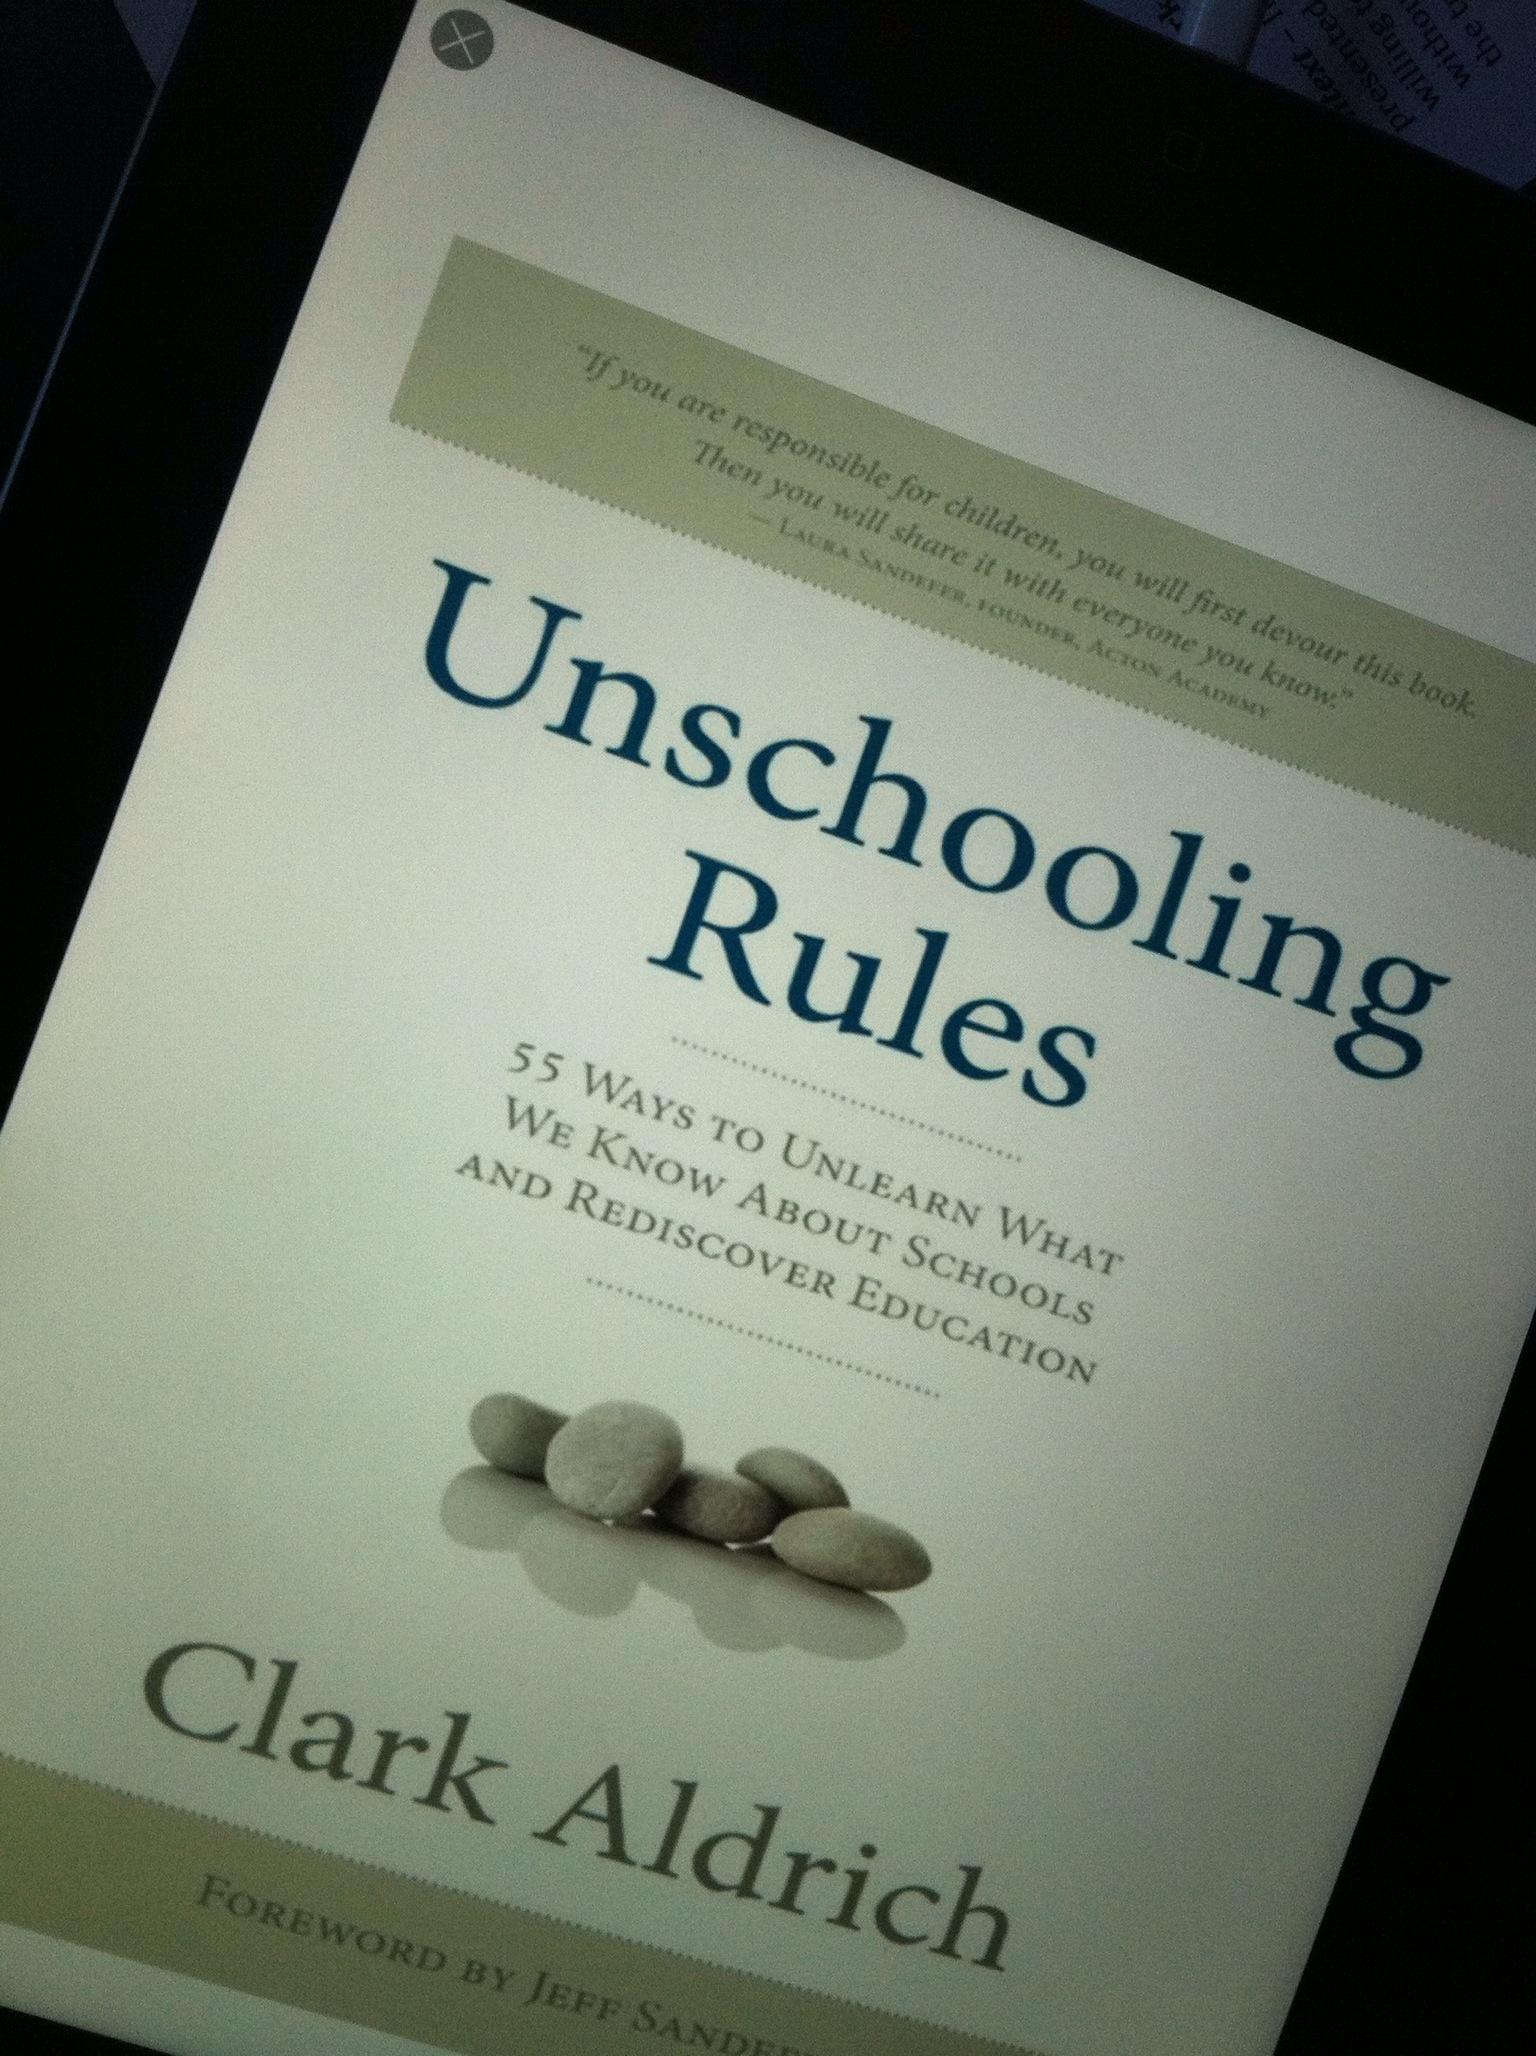 unschooling rules photo